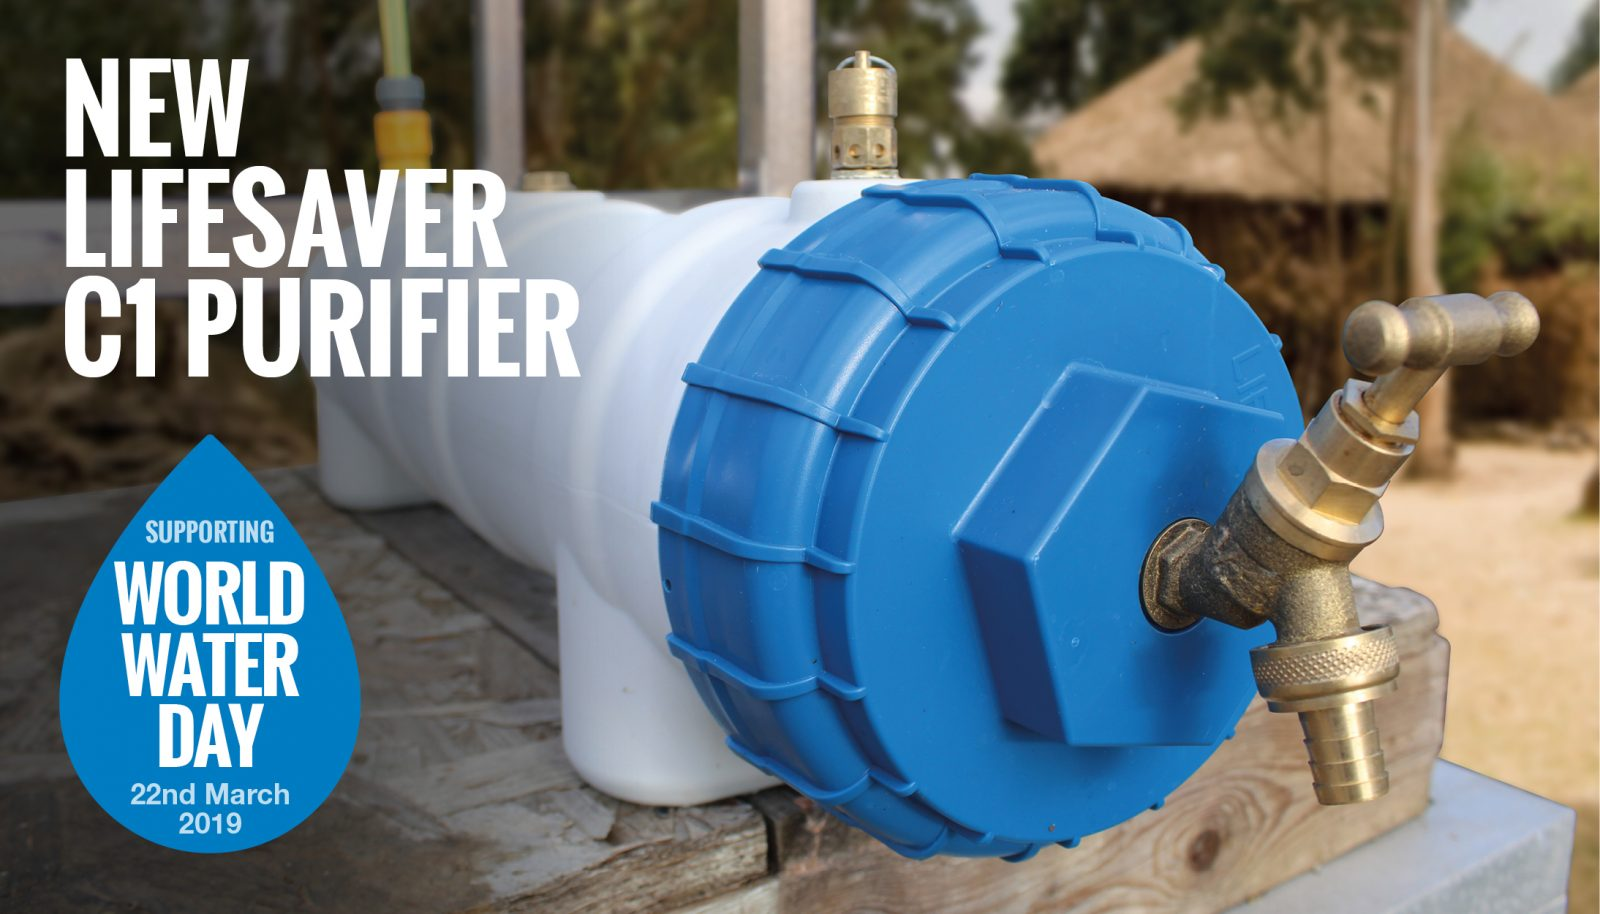 We're excited to announce the launch of the LifeSaver C1, our brand new water purifier for large scale water purification